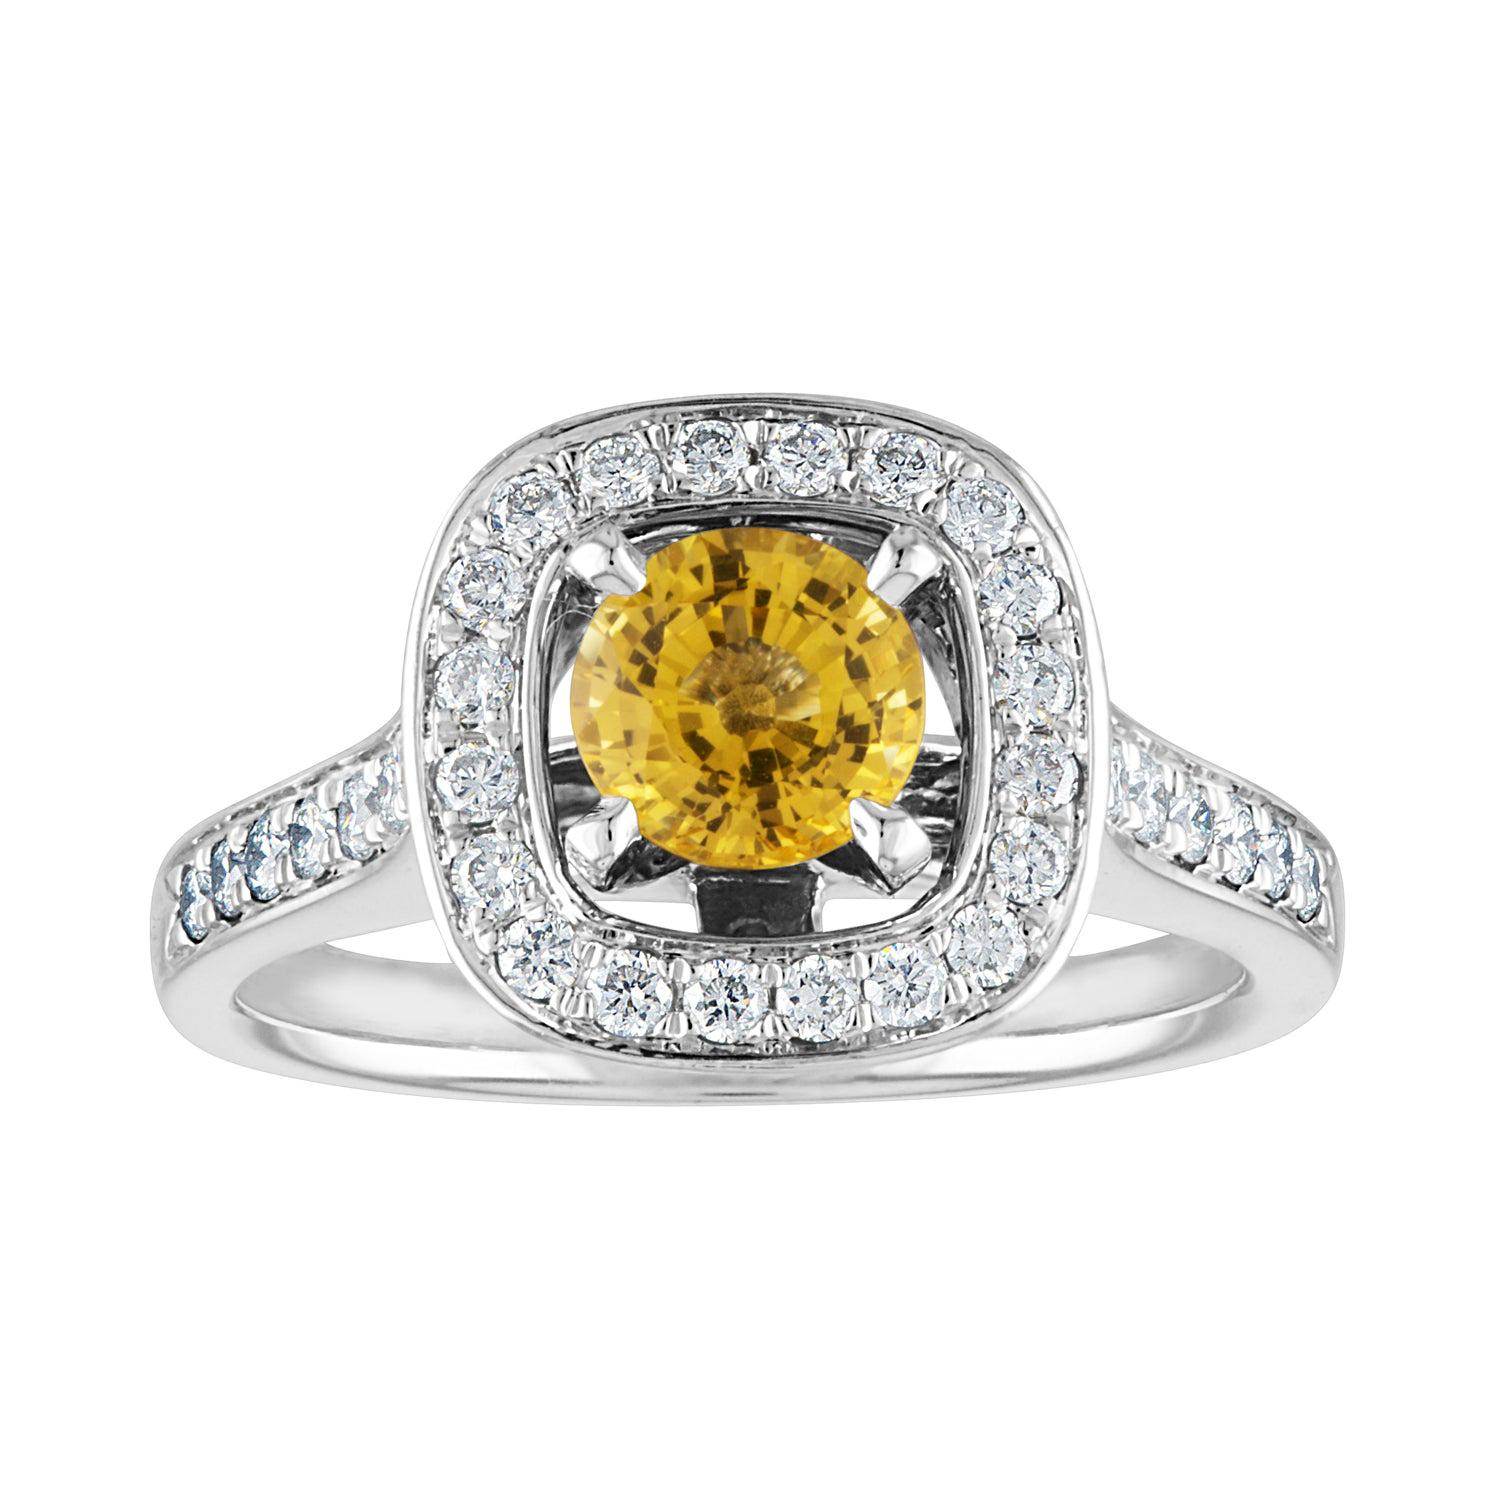 AGL Certified 0.92 Carat Round Yellow Sapphire Diamond Gold Ring